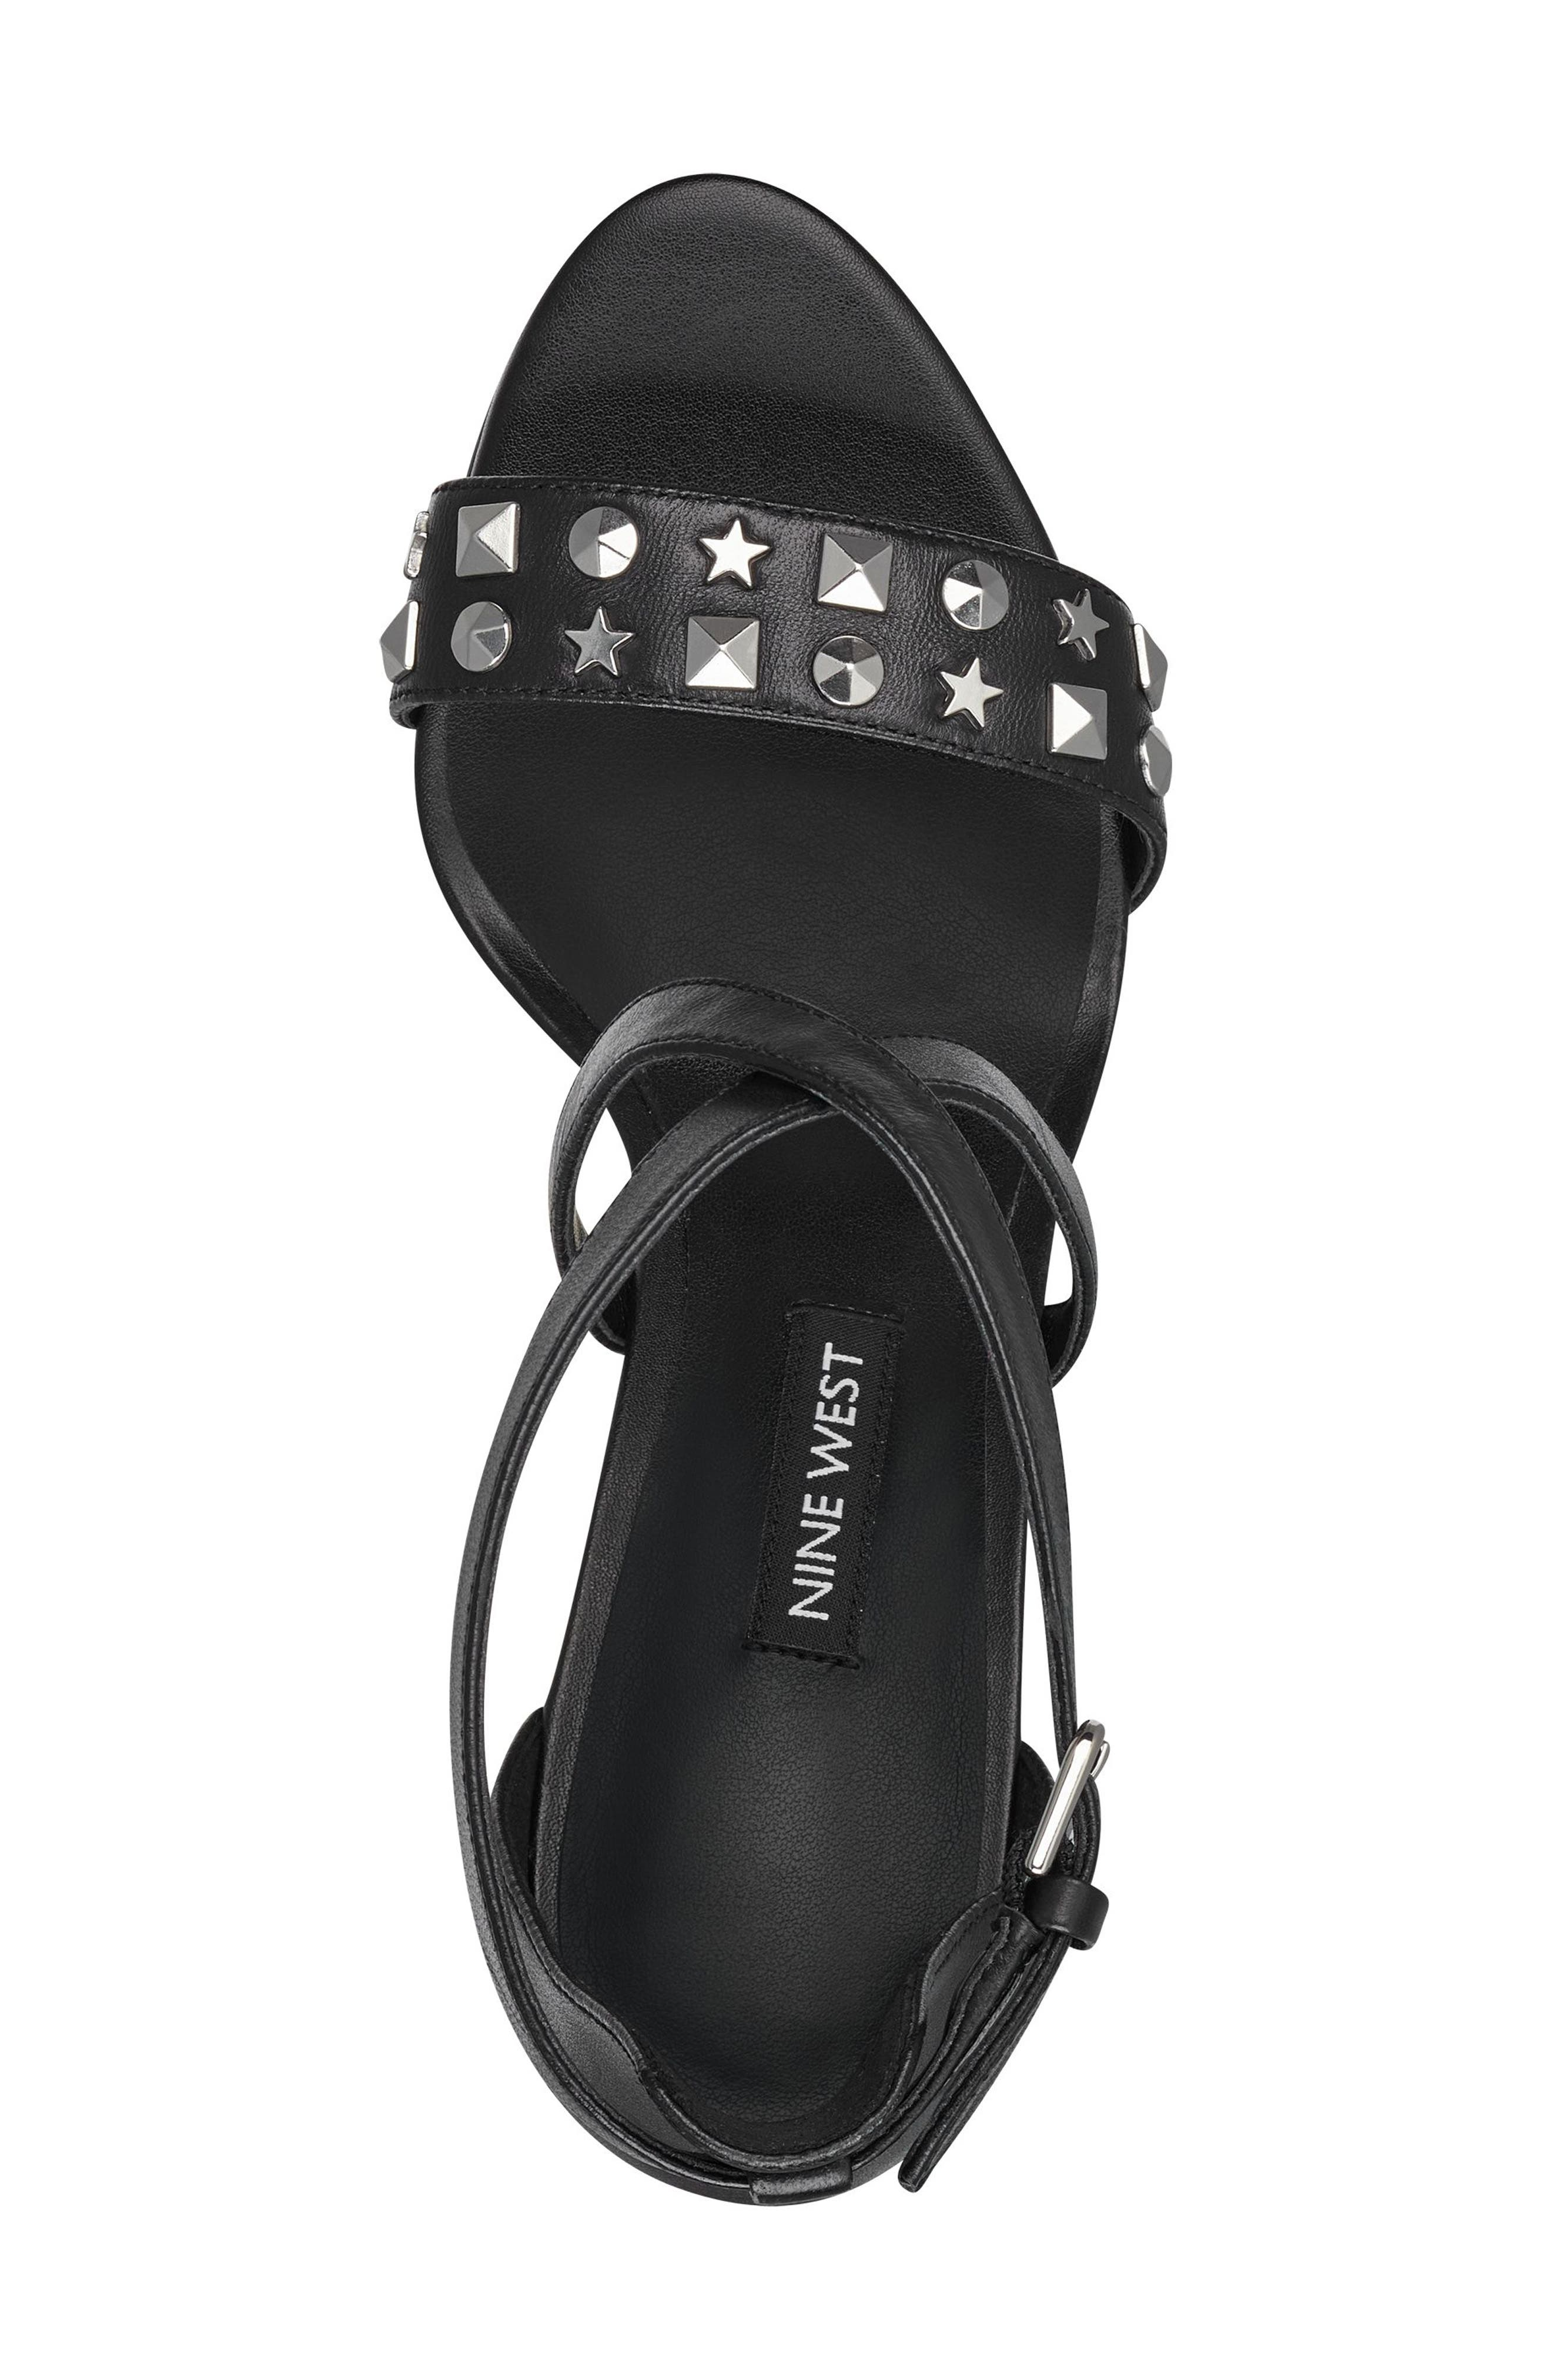 Maziany Studded Sandal,                             Alternate thumbnail 5, color,                             BLACK LEATHER